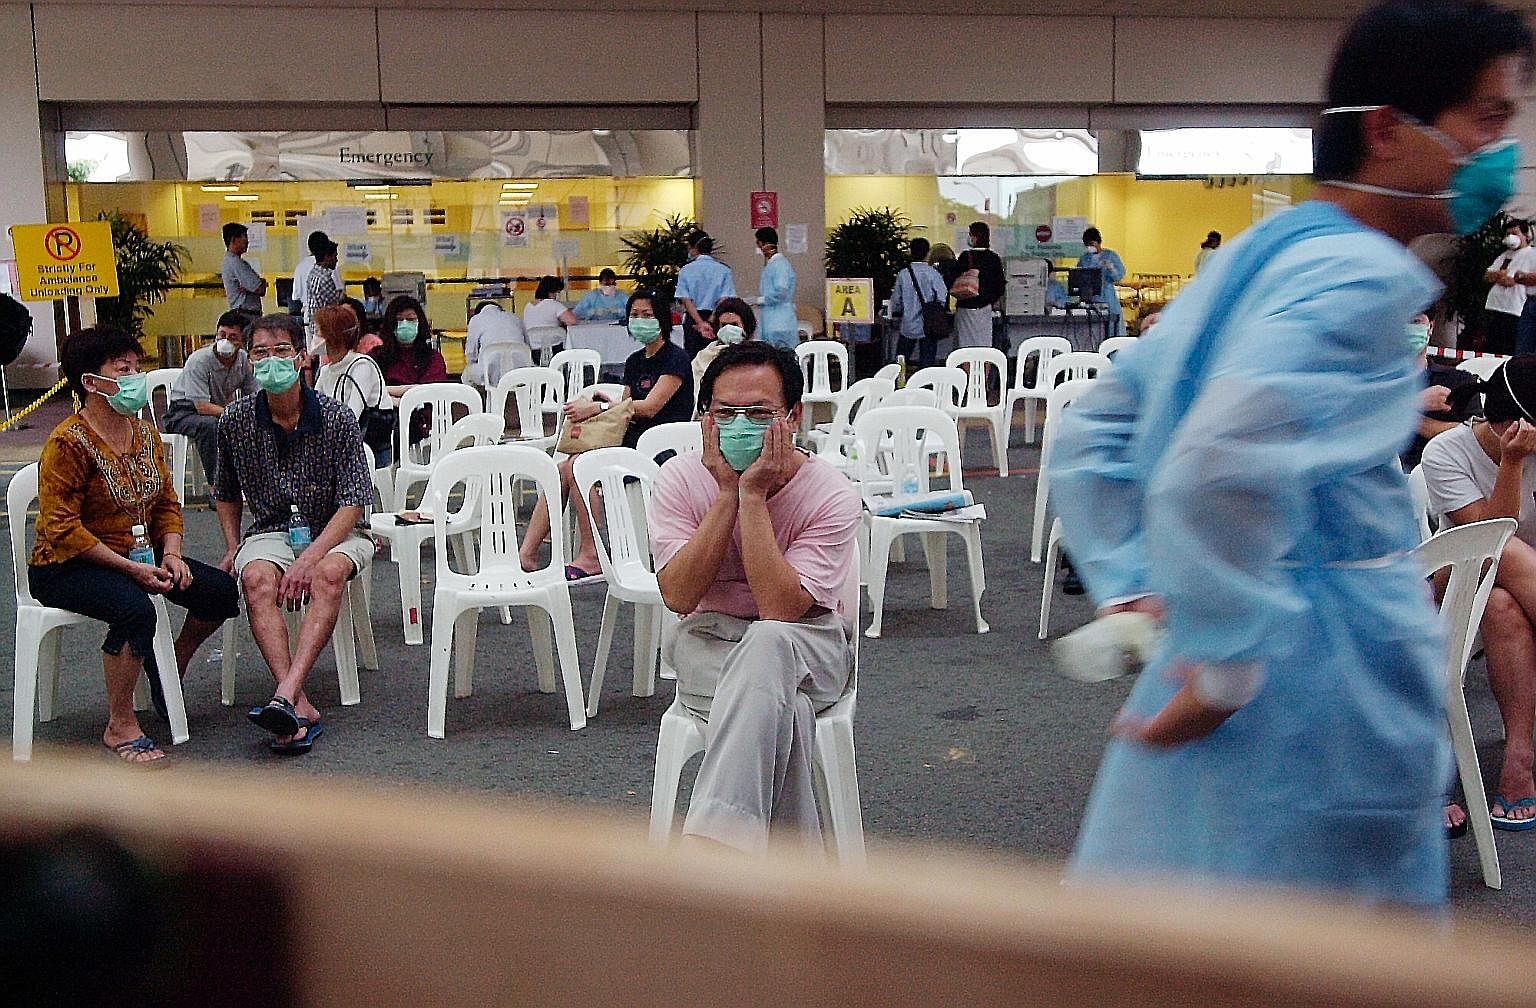 Patients waiting to be screened for the severe acute respiratory syndrome outside Tan Tock Seng Hospital's accident and emergency department during the outbreak. The writer points out that during the Sars crisis in 2003, the people of Singapore behav